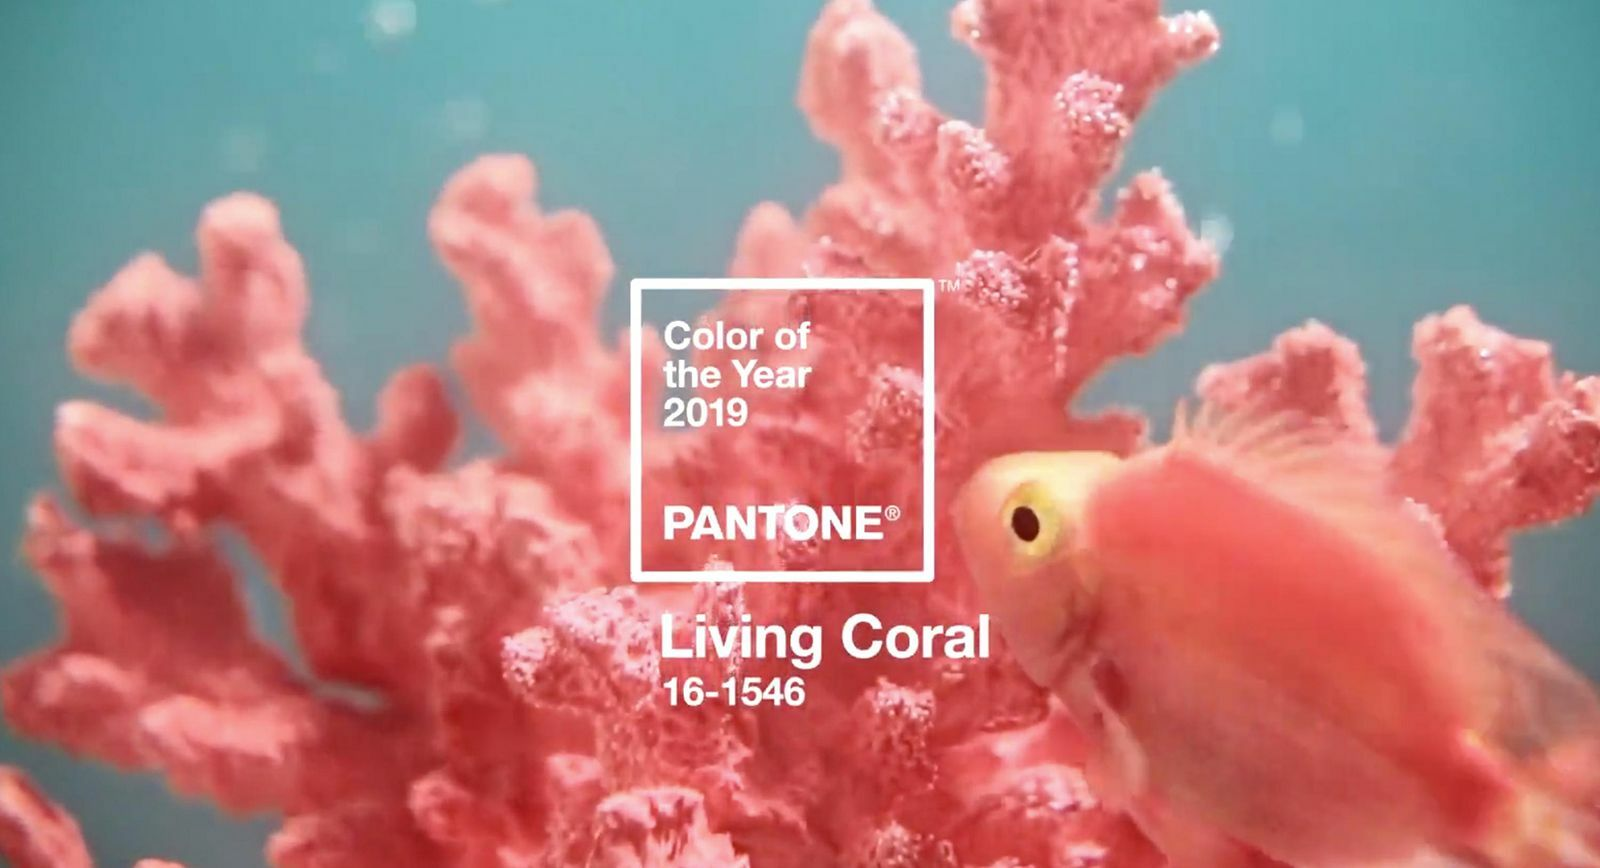 Pantone 2019: 'Living Coral' named Colour of the Year